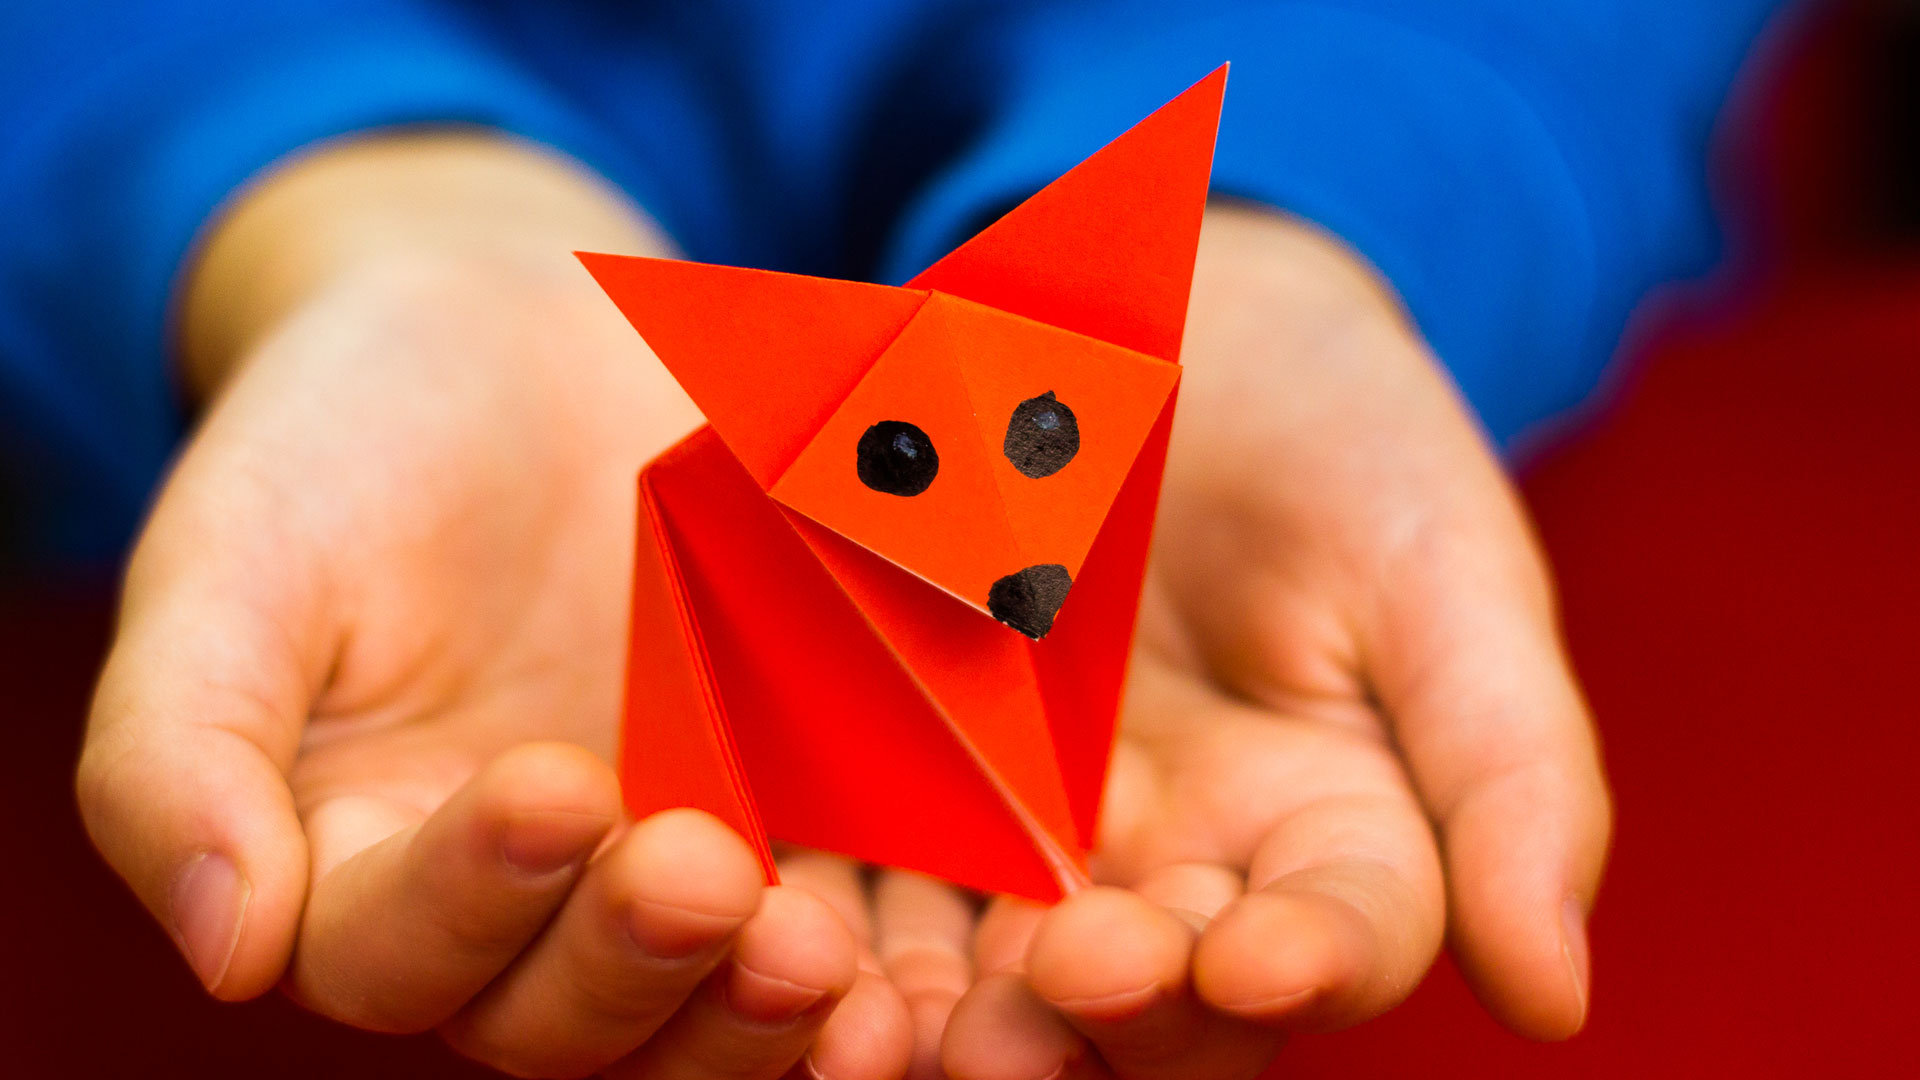 Origami for kids archives art for kids hub how to fold an easy origami fox jeuxipadfo Choice Image